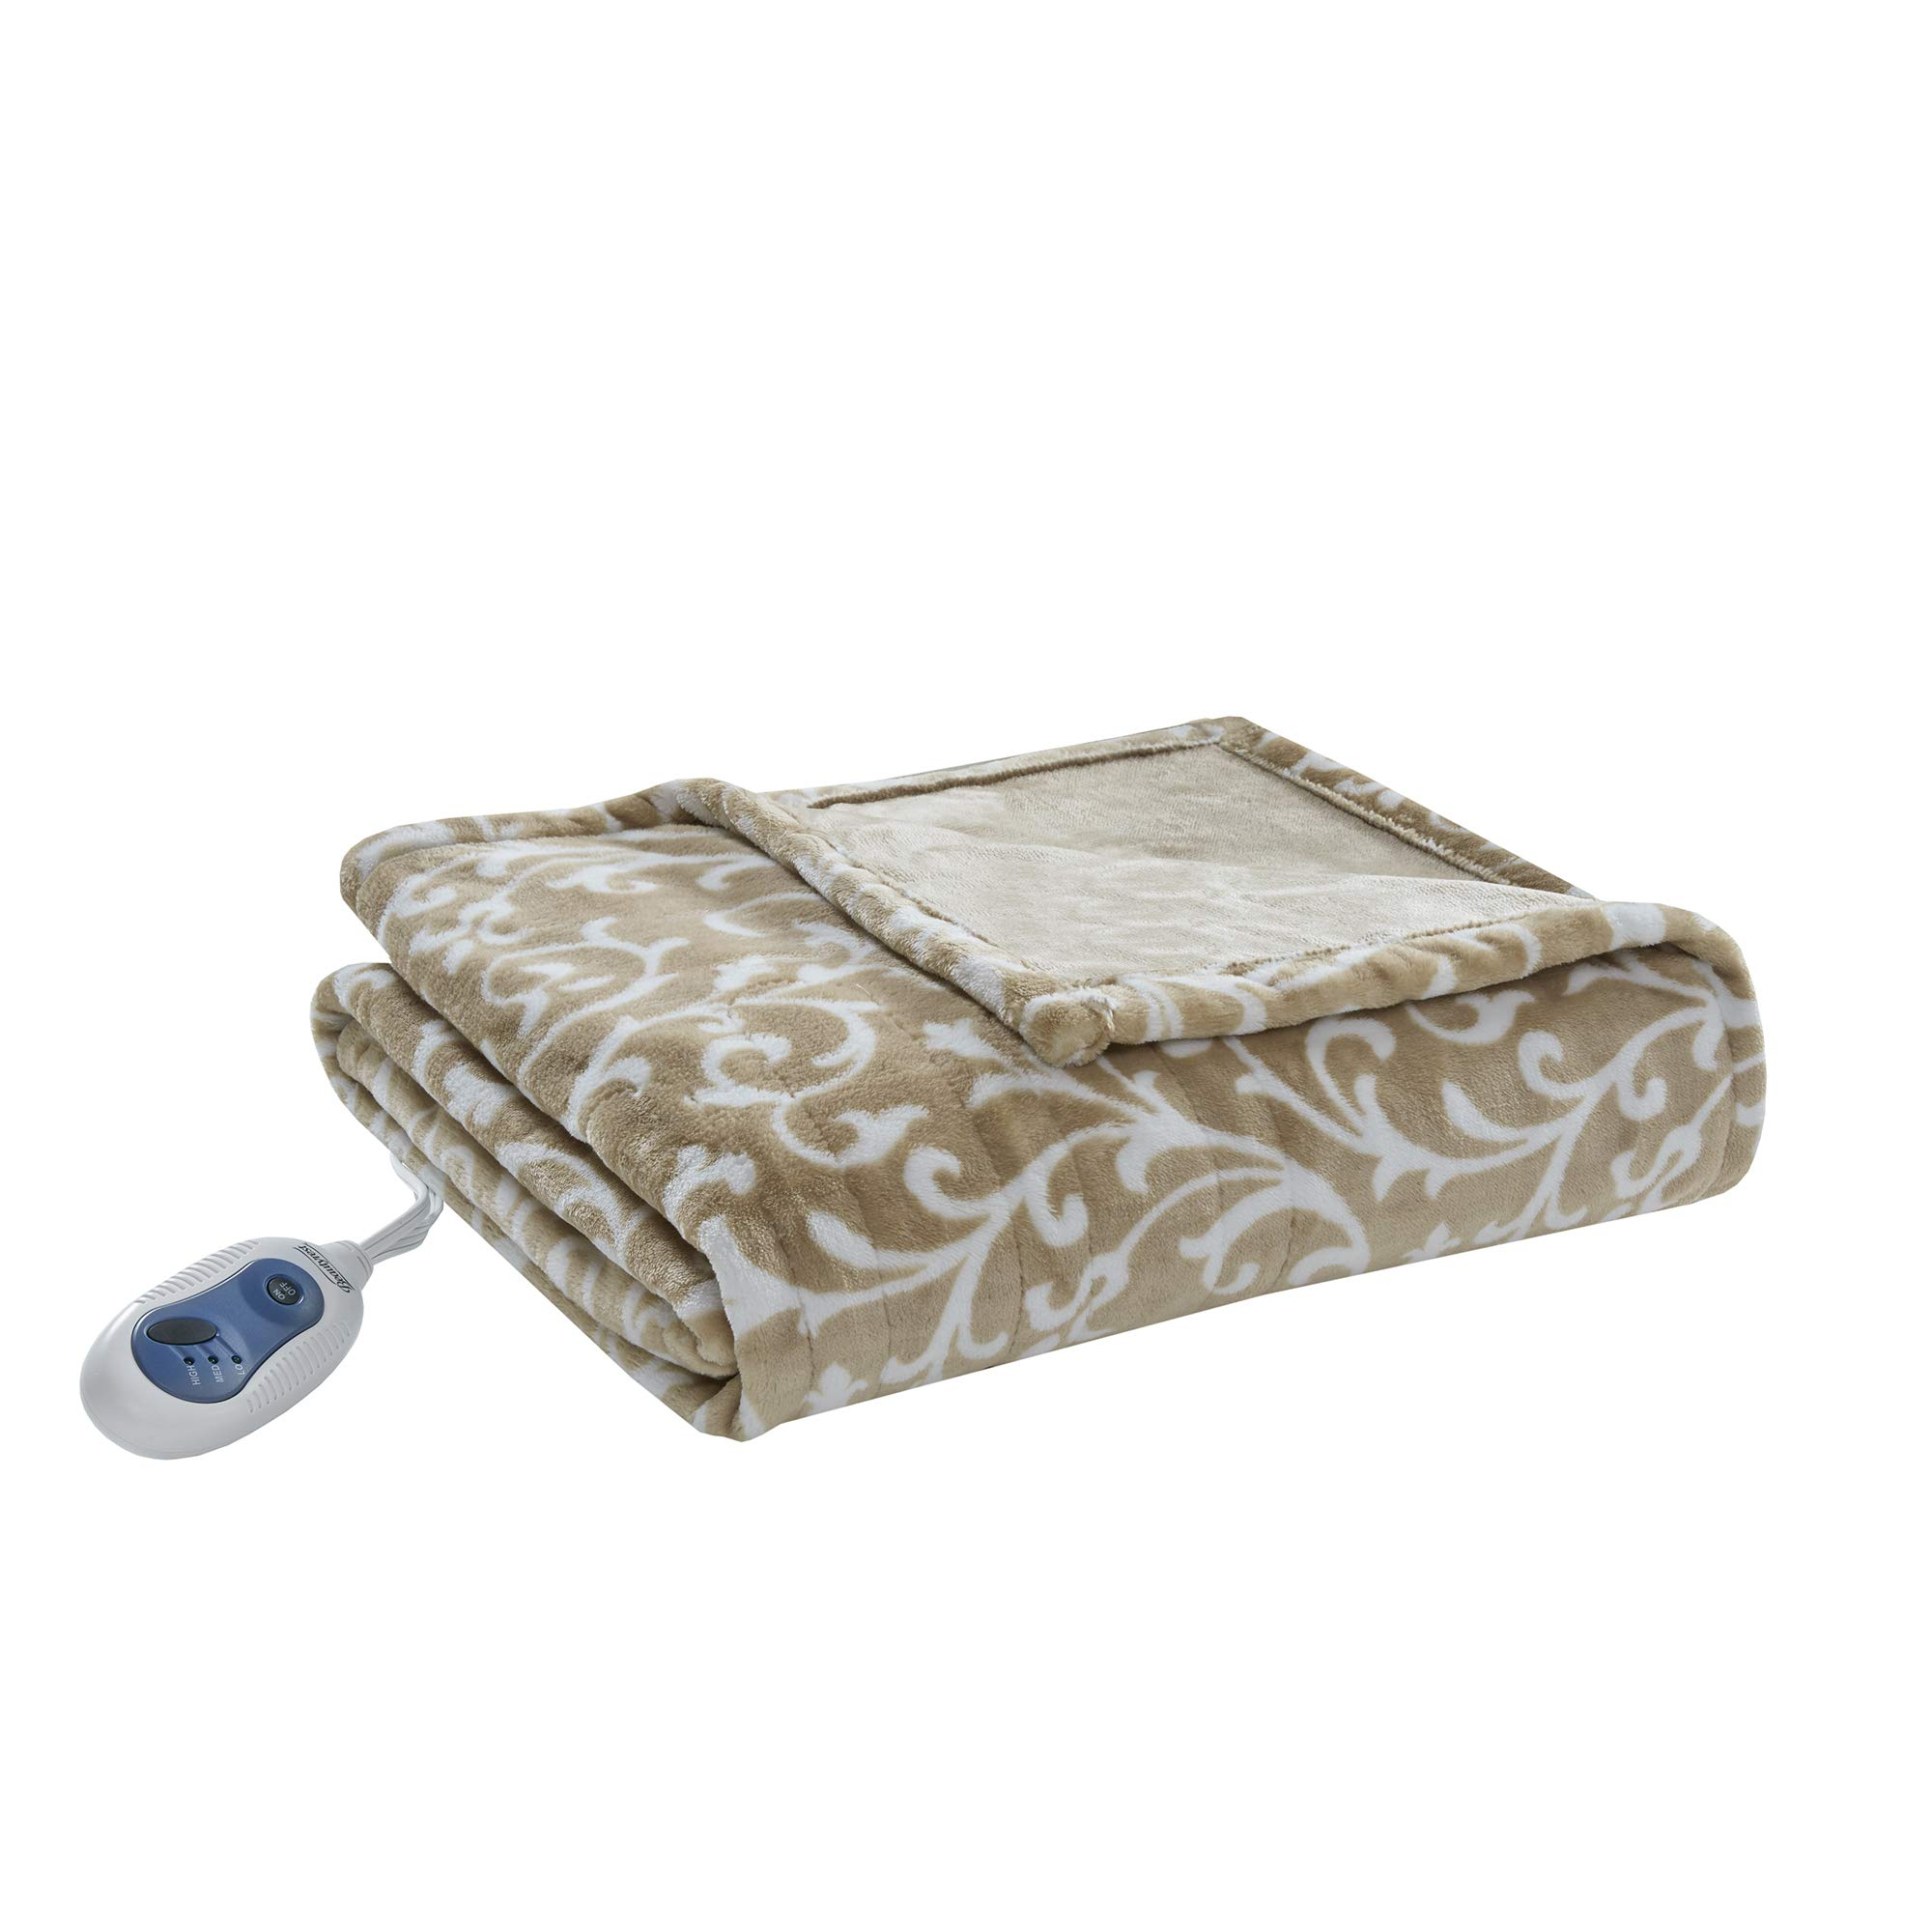 Beautyrest - Plush Heated Throw Blanket -Secure Comfort Technology-Oversized 60'' x 70''- Tan - Scroll Printed Pattern - Cozy Soft Microlight Heated Electric Blanket Throw - 3-Setting Heat Controller